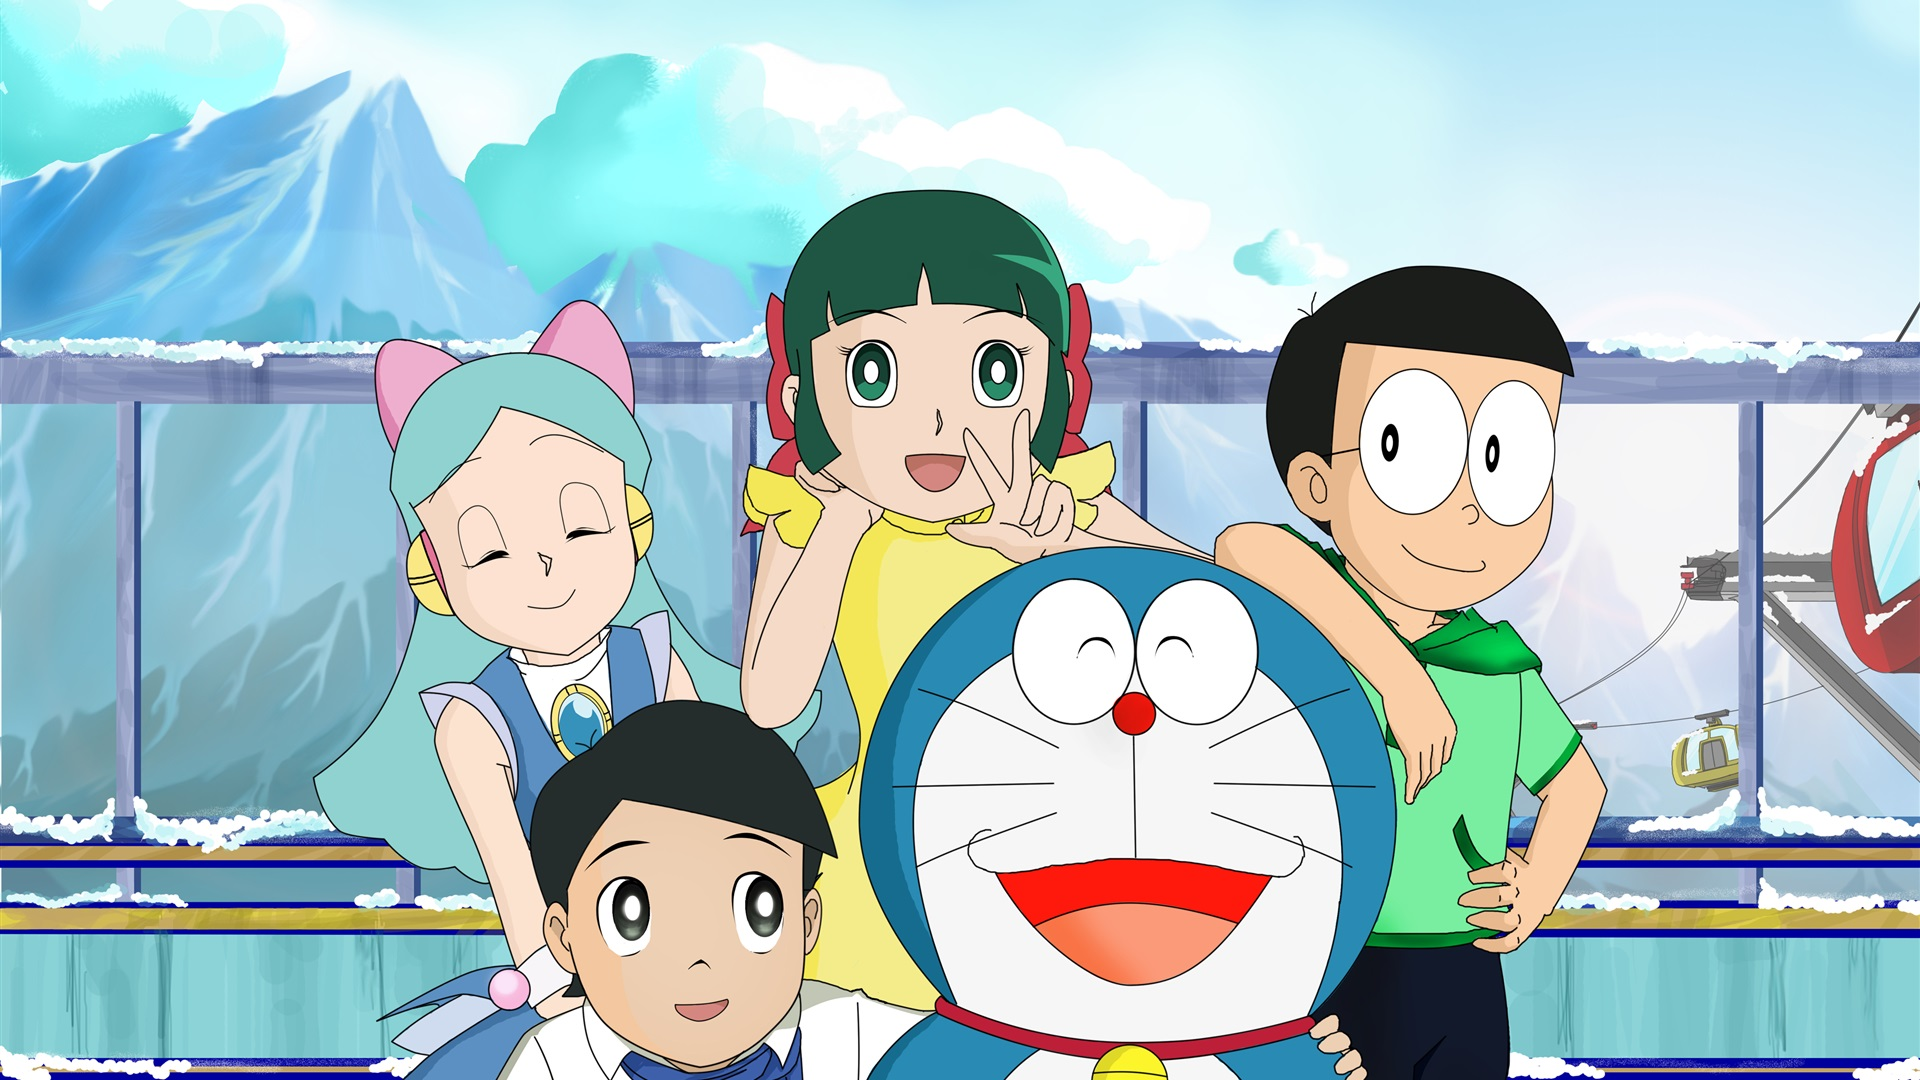 Doraemon Hd Wallpapers Backgrounds Read Games Review Play